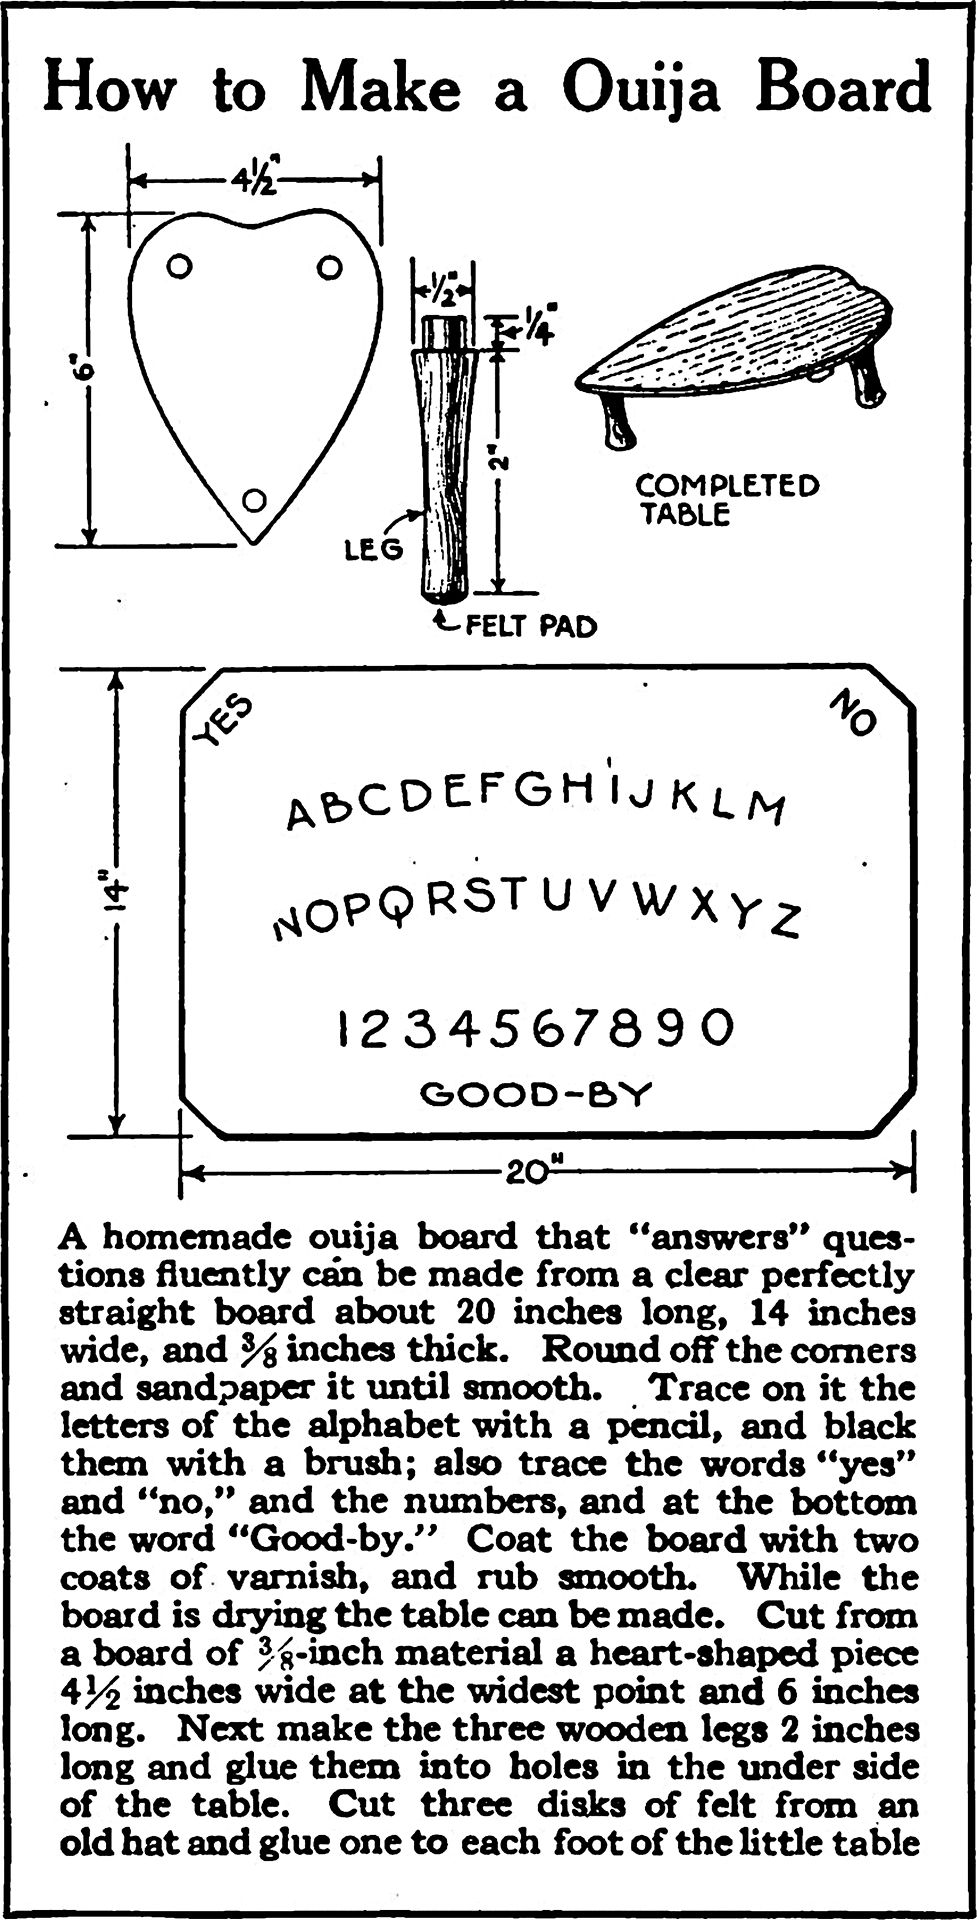 How to make your own ouija board from popular science monthly 1920 how to make your own ouija board from popular science monthly 1920 crucial buycottarizona Gallery